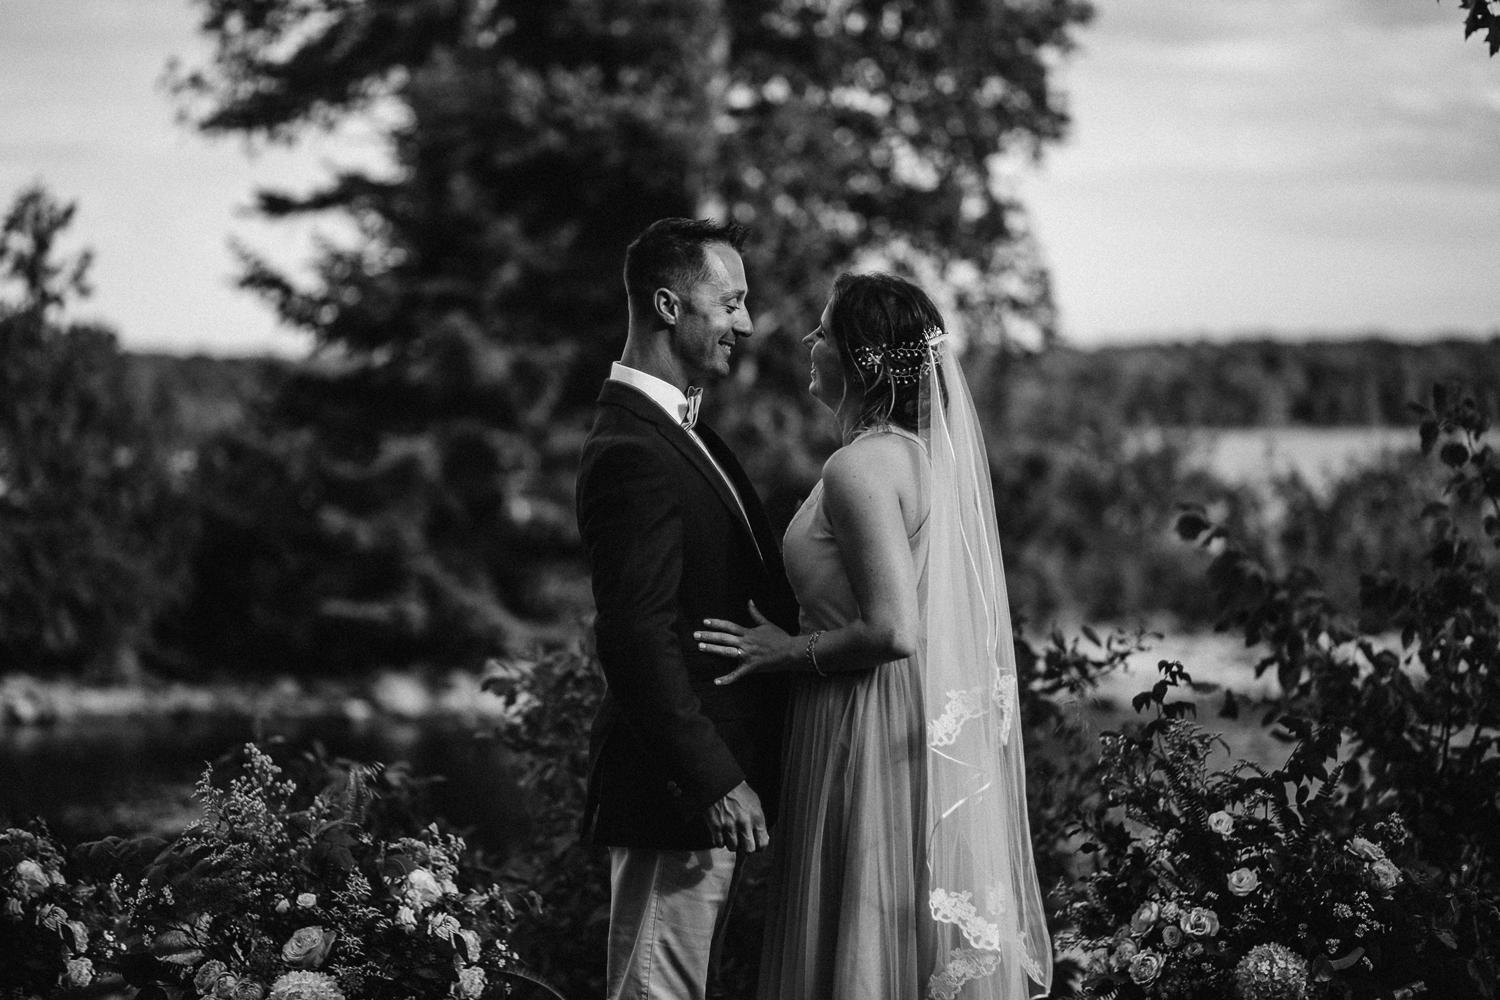 kerry ford photography - small intimate backyard rideau lake island wedding perth ontario-044.jpg